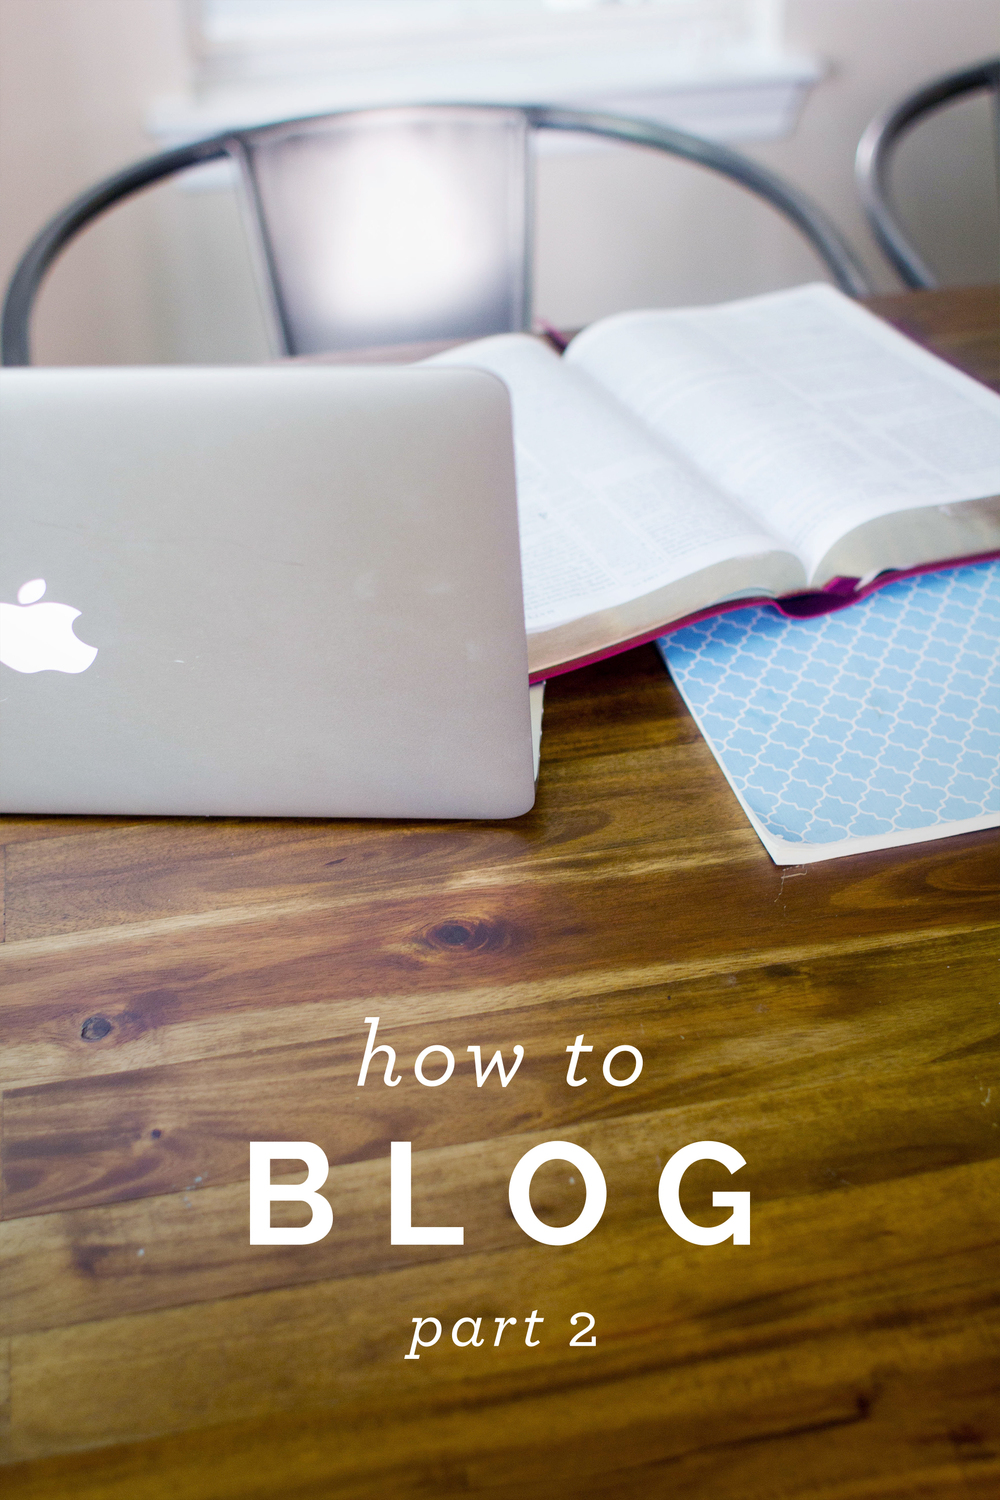 How to Blog, Part 2 - that's pretty ace